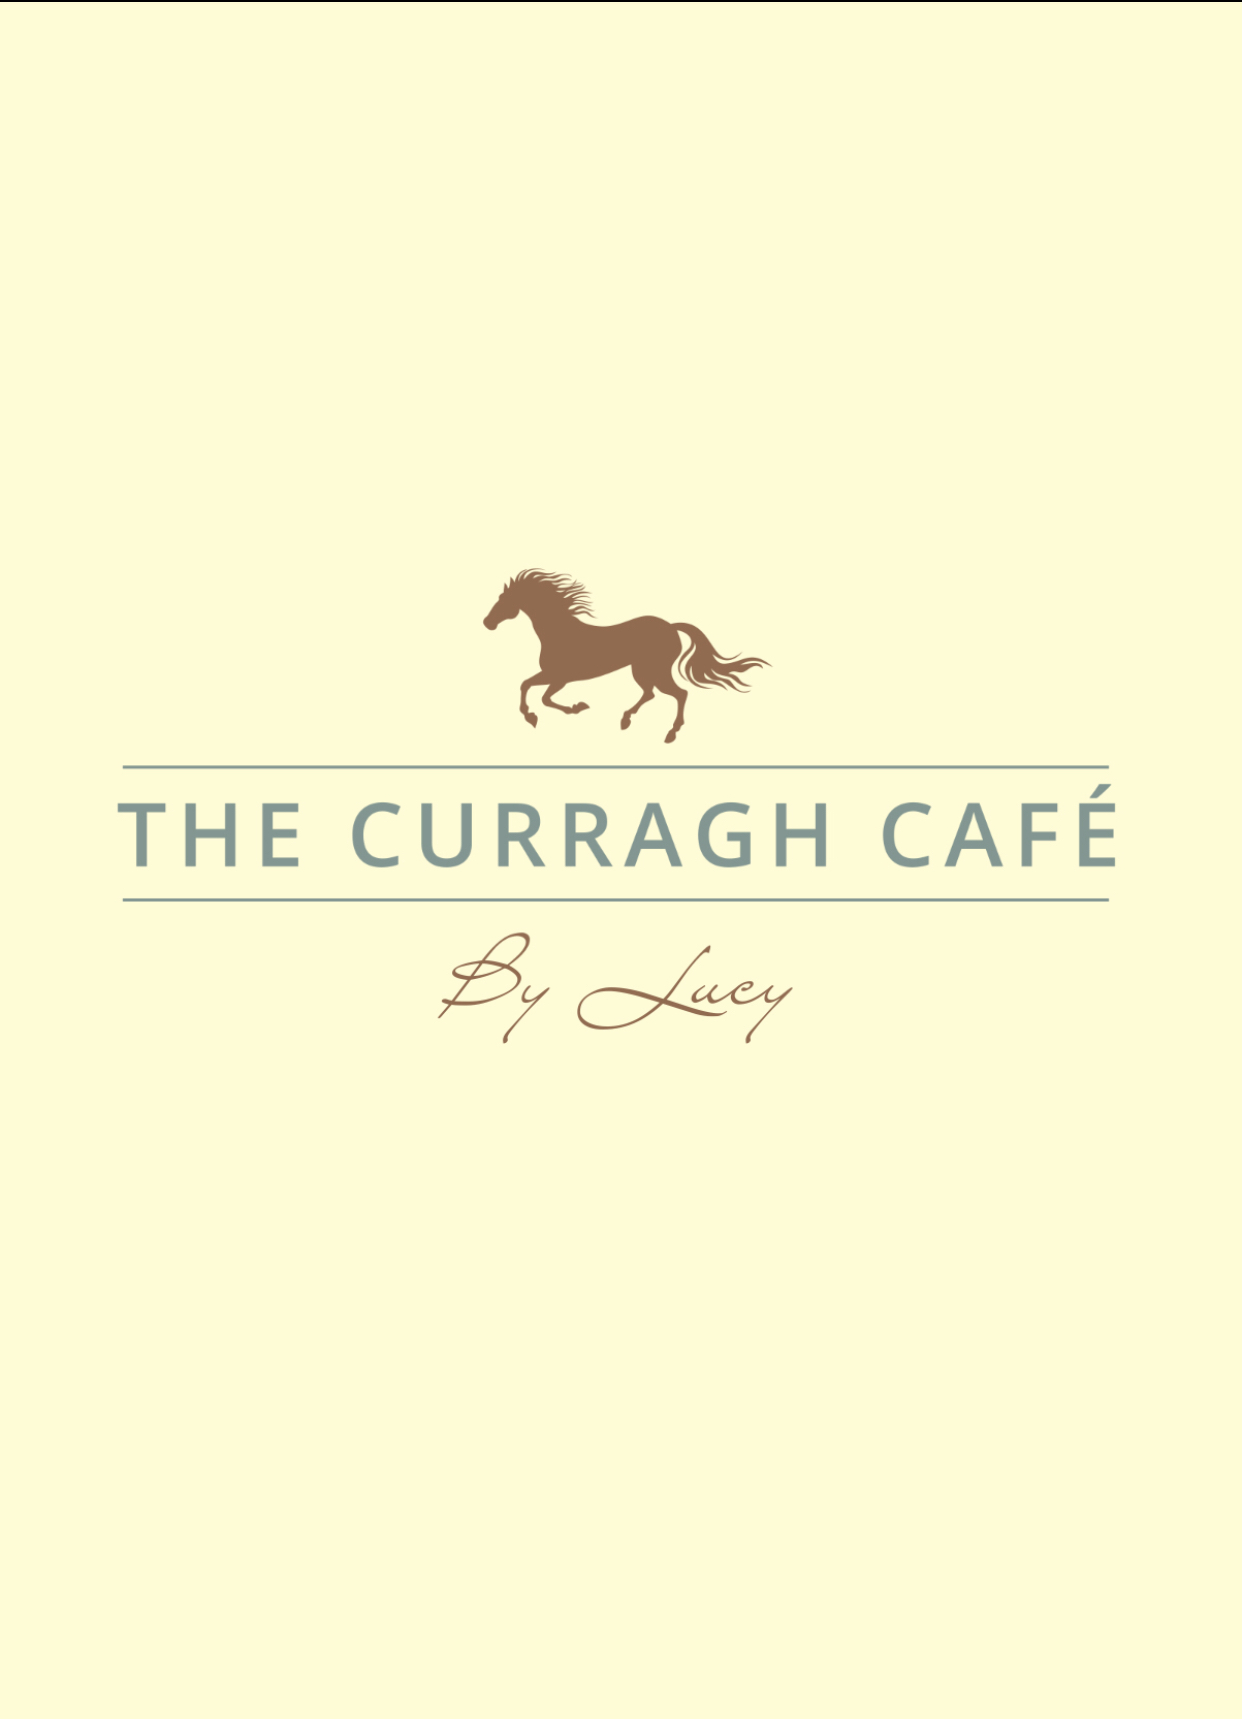 The Curragh Cafe by Lucy